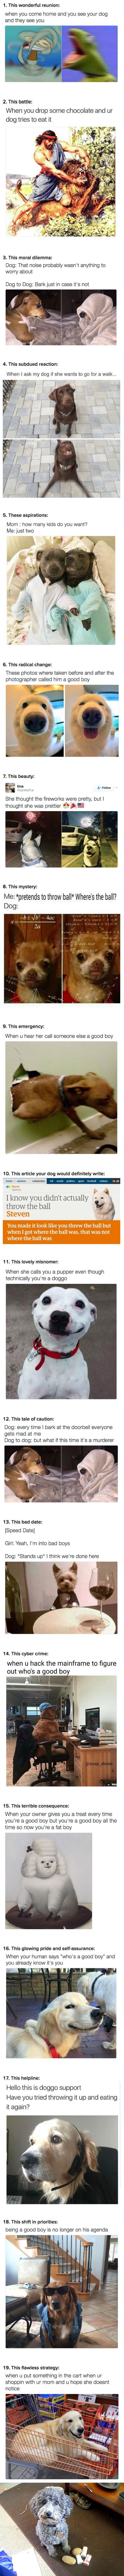 Best Cute Funny Dogs Ideas On Pinterest Funny Dog Humor - 18 super adorable animal comics thatll make your day